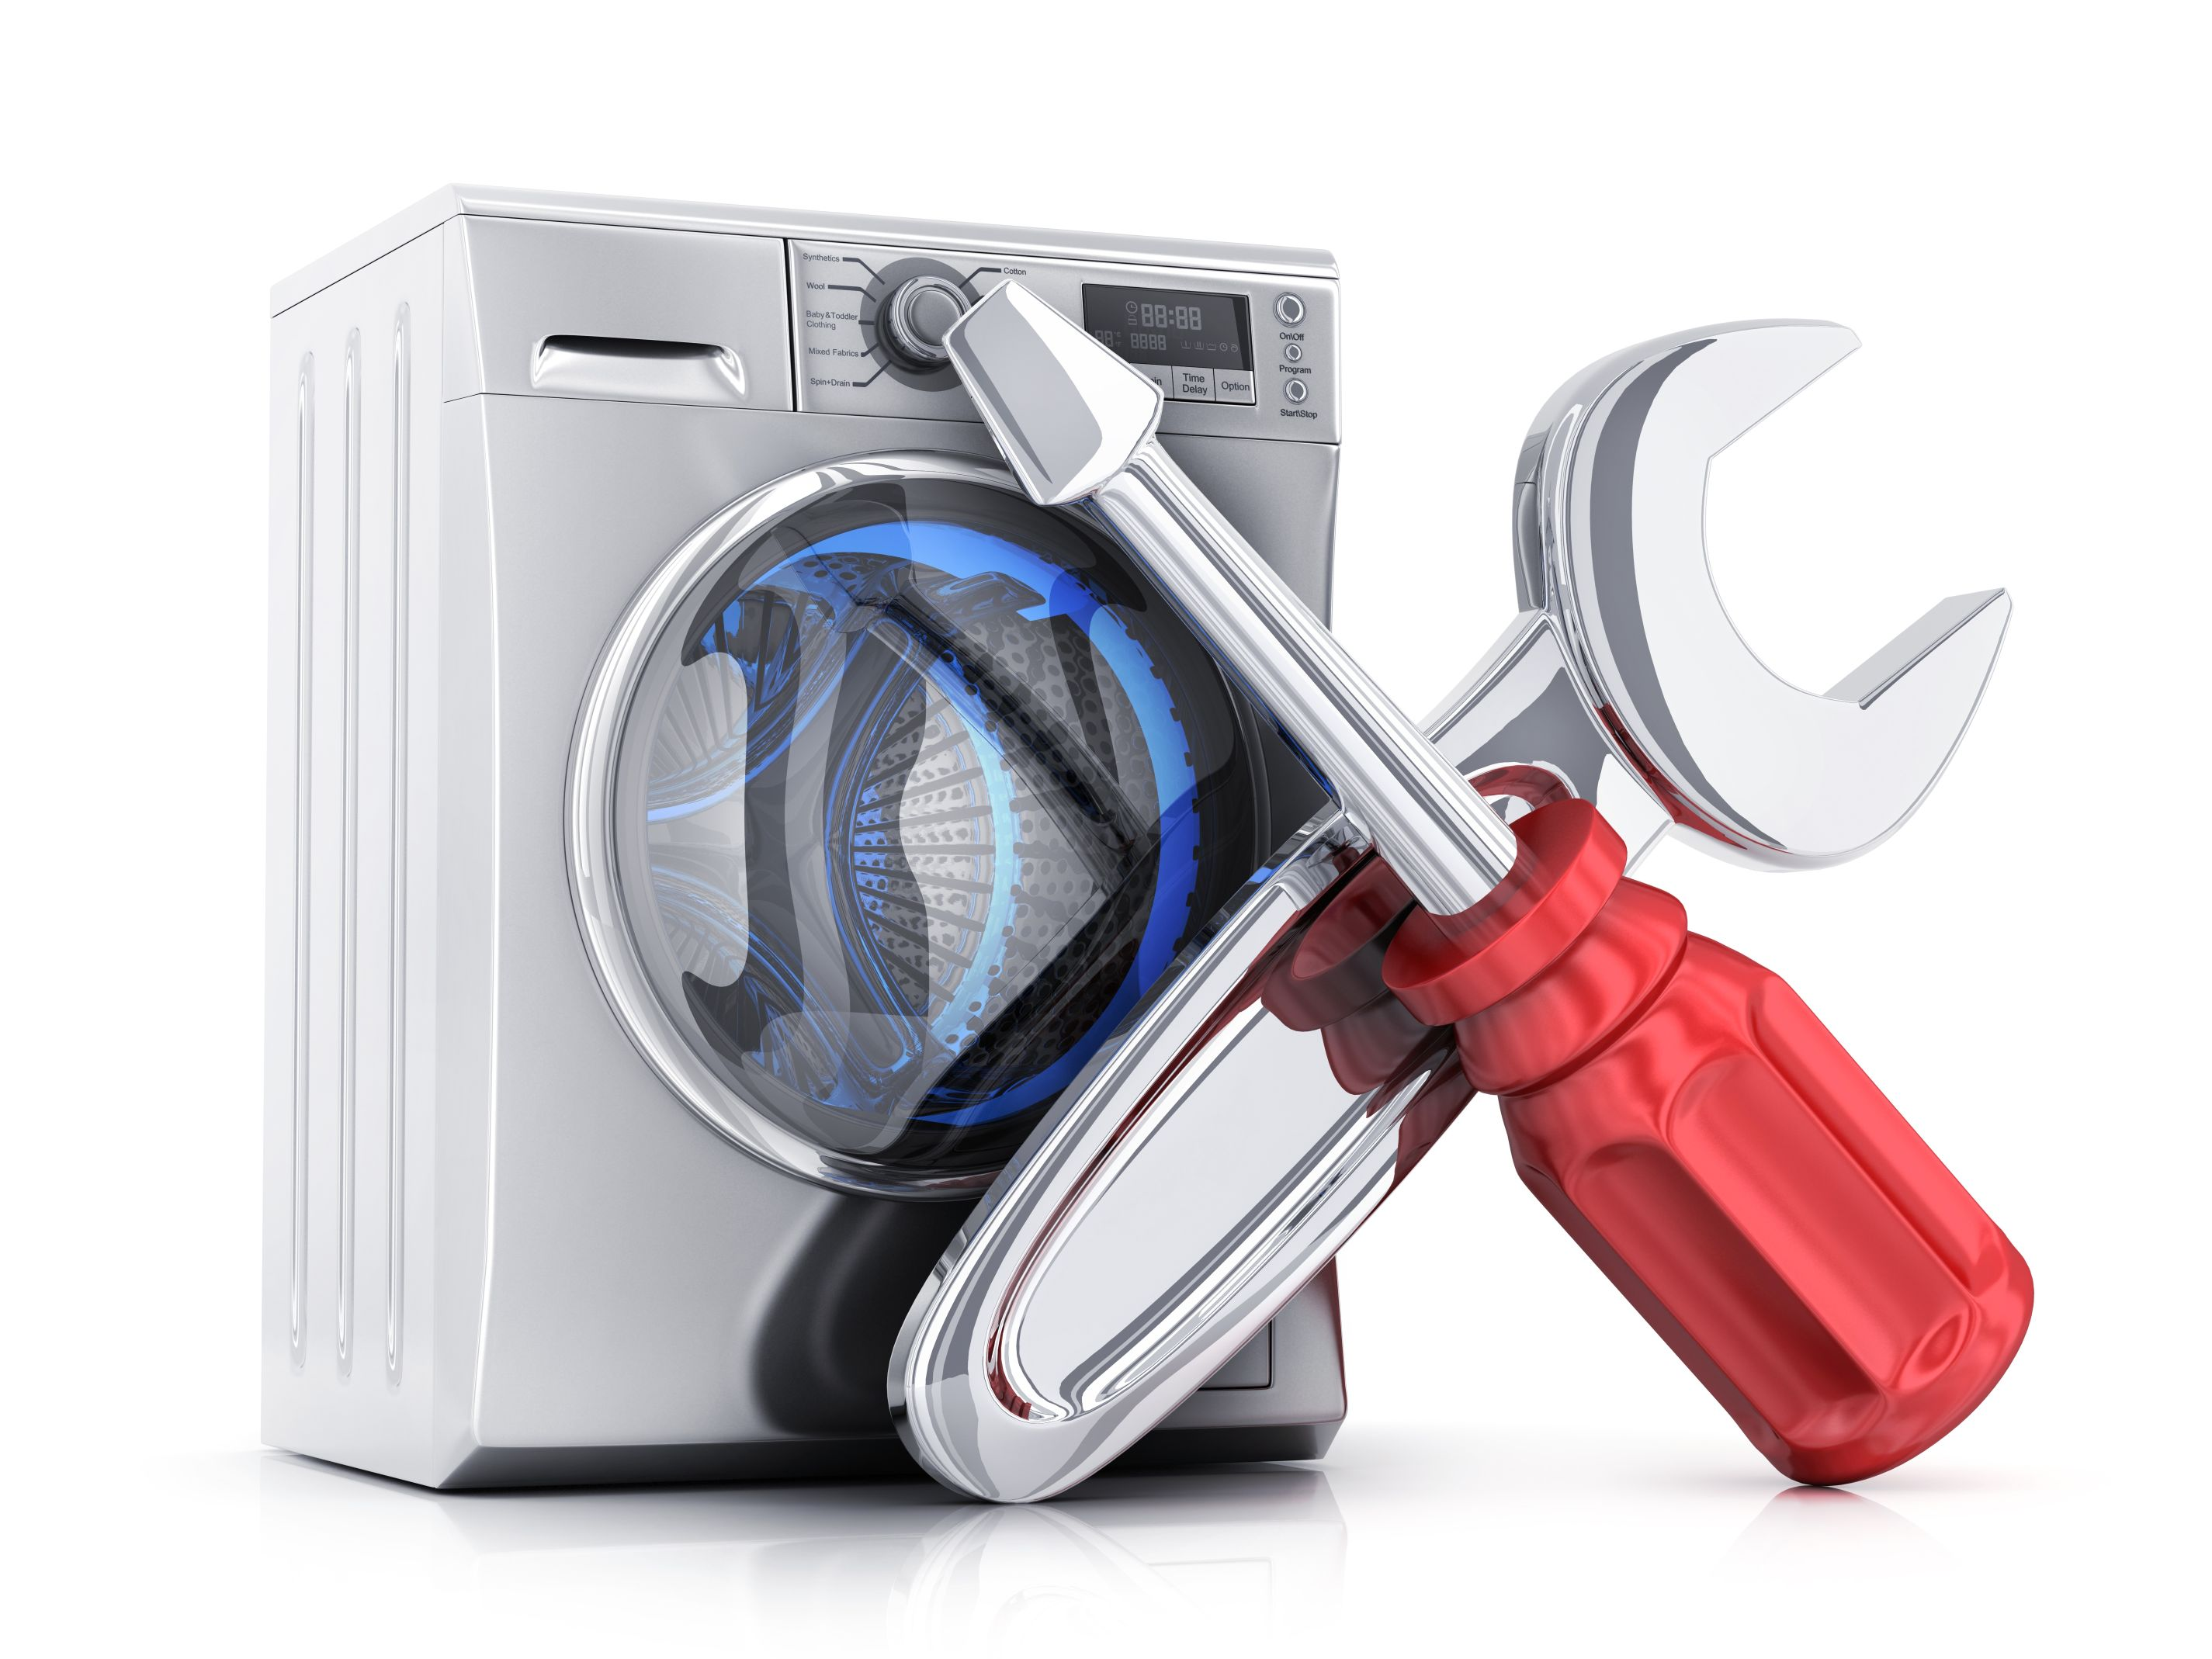 Find the Best Appliance Repair near me How to Choose | SmartGuy